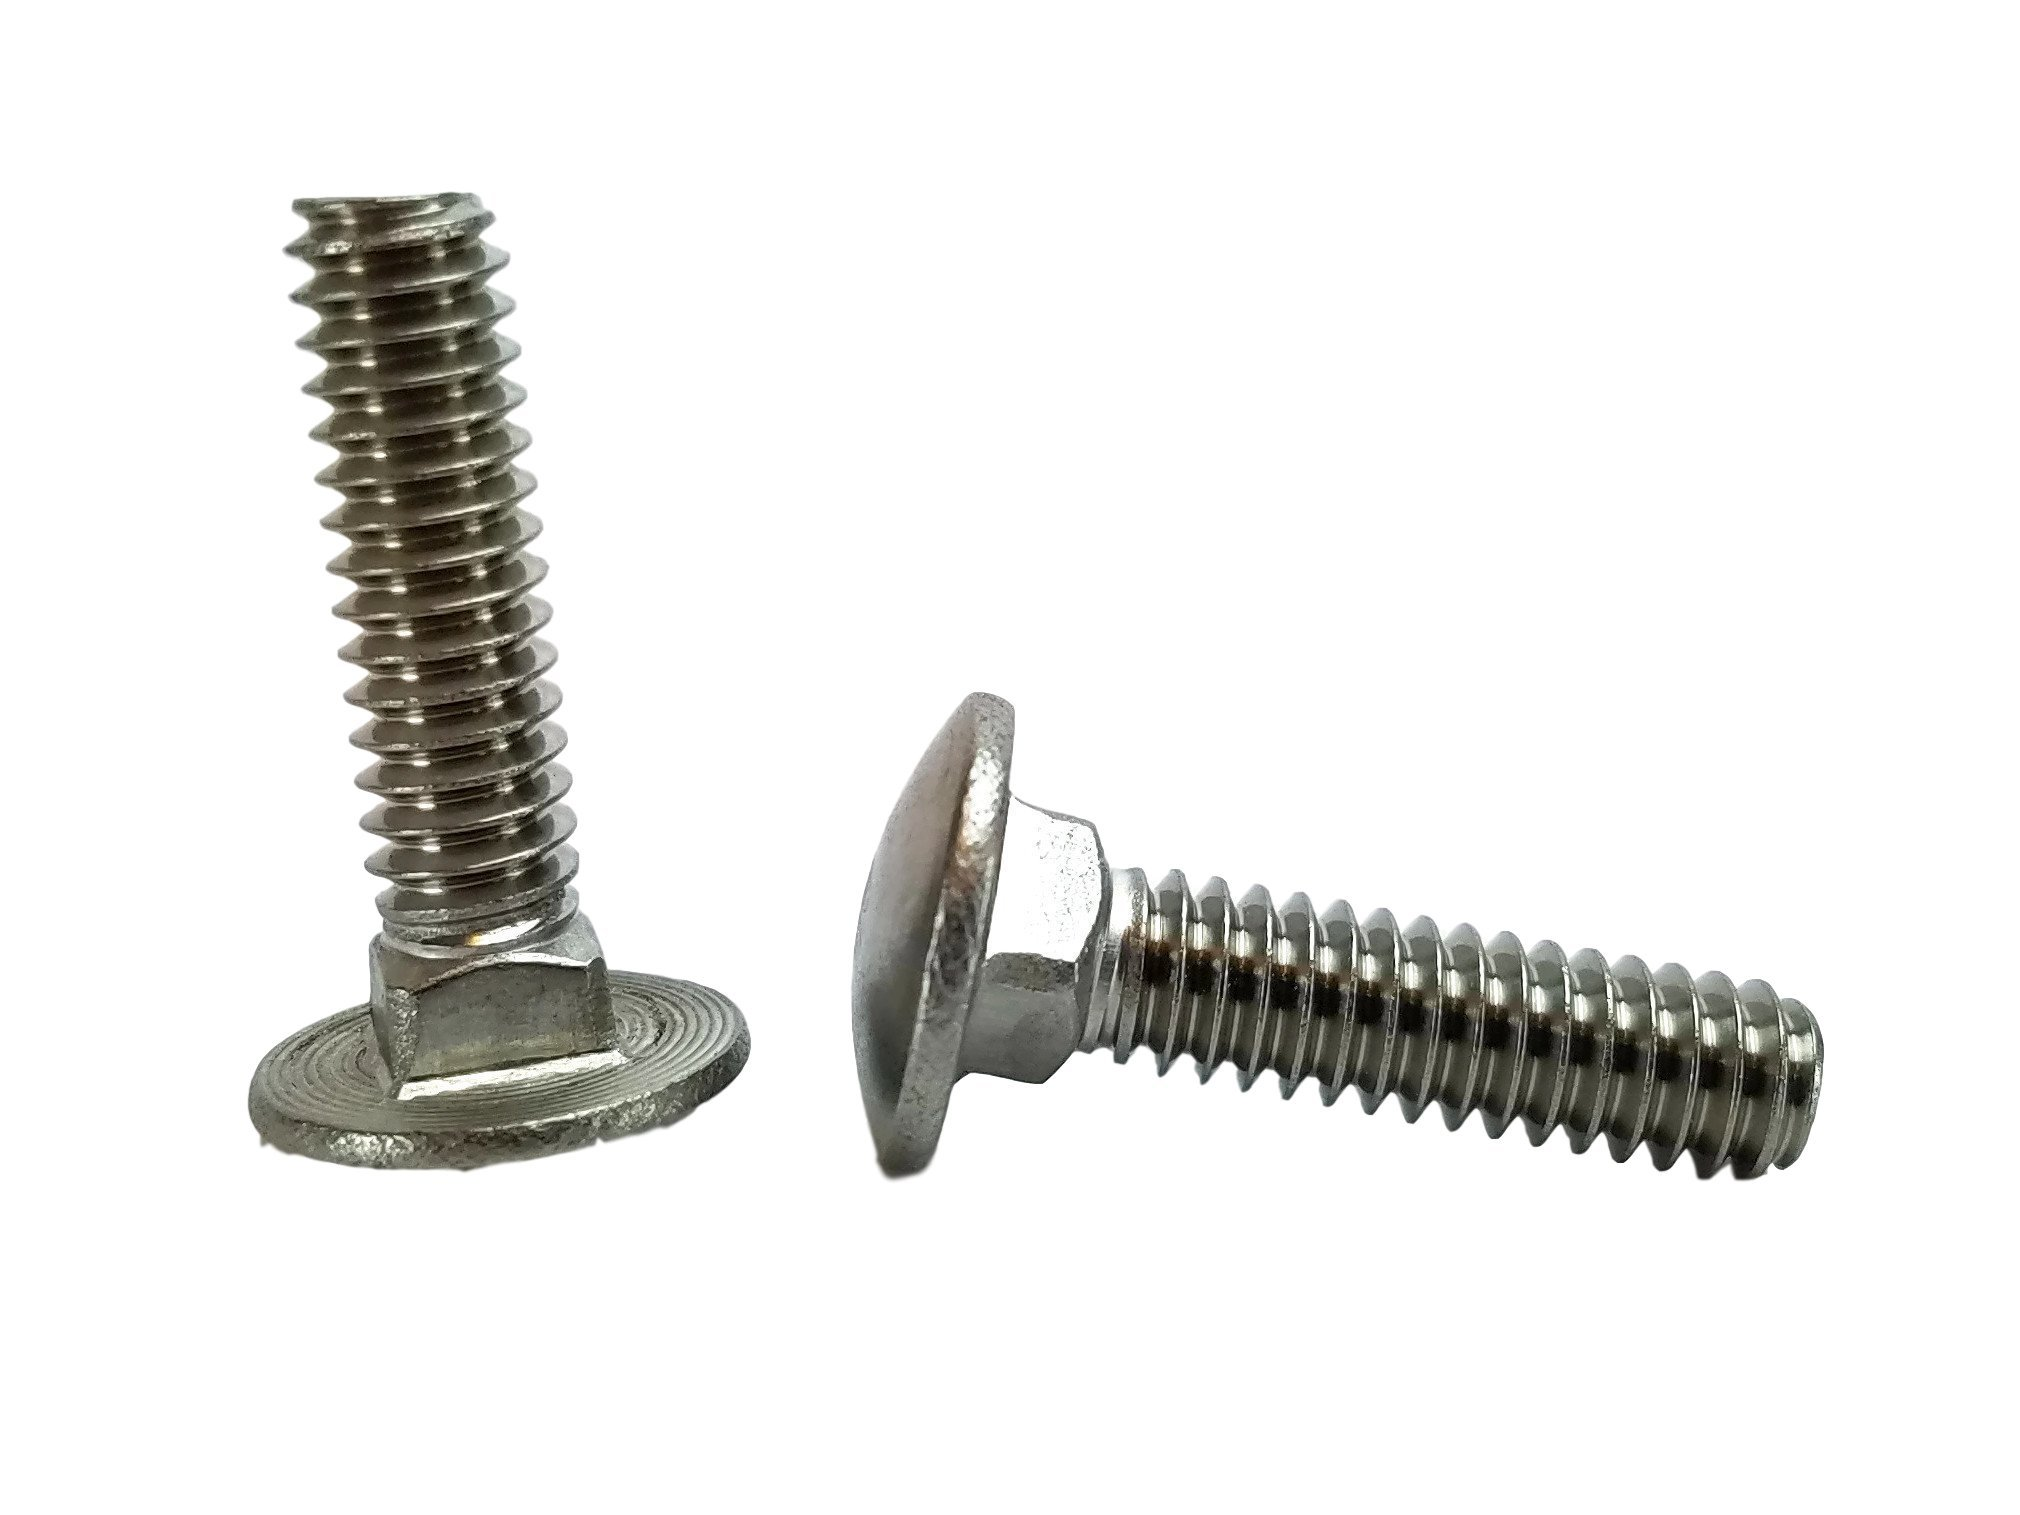 Stainless 1/4-20 x 1'' Carriage Bolt (3/4'' to 5'' Lengths Available in Listing), 18-8 Stainless Steel,50 Pieces (1/4-20x1)